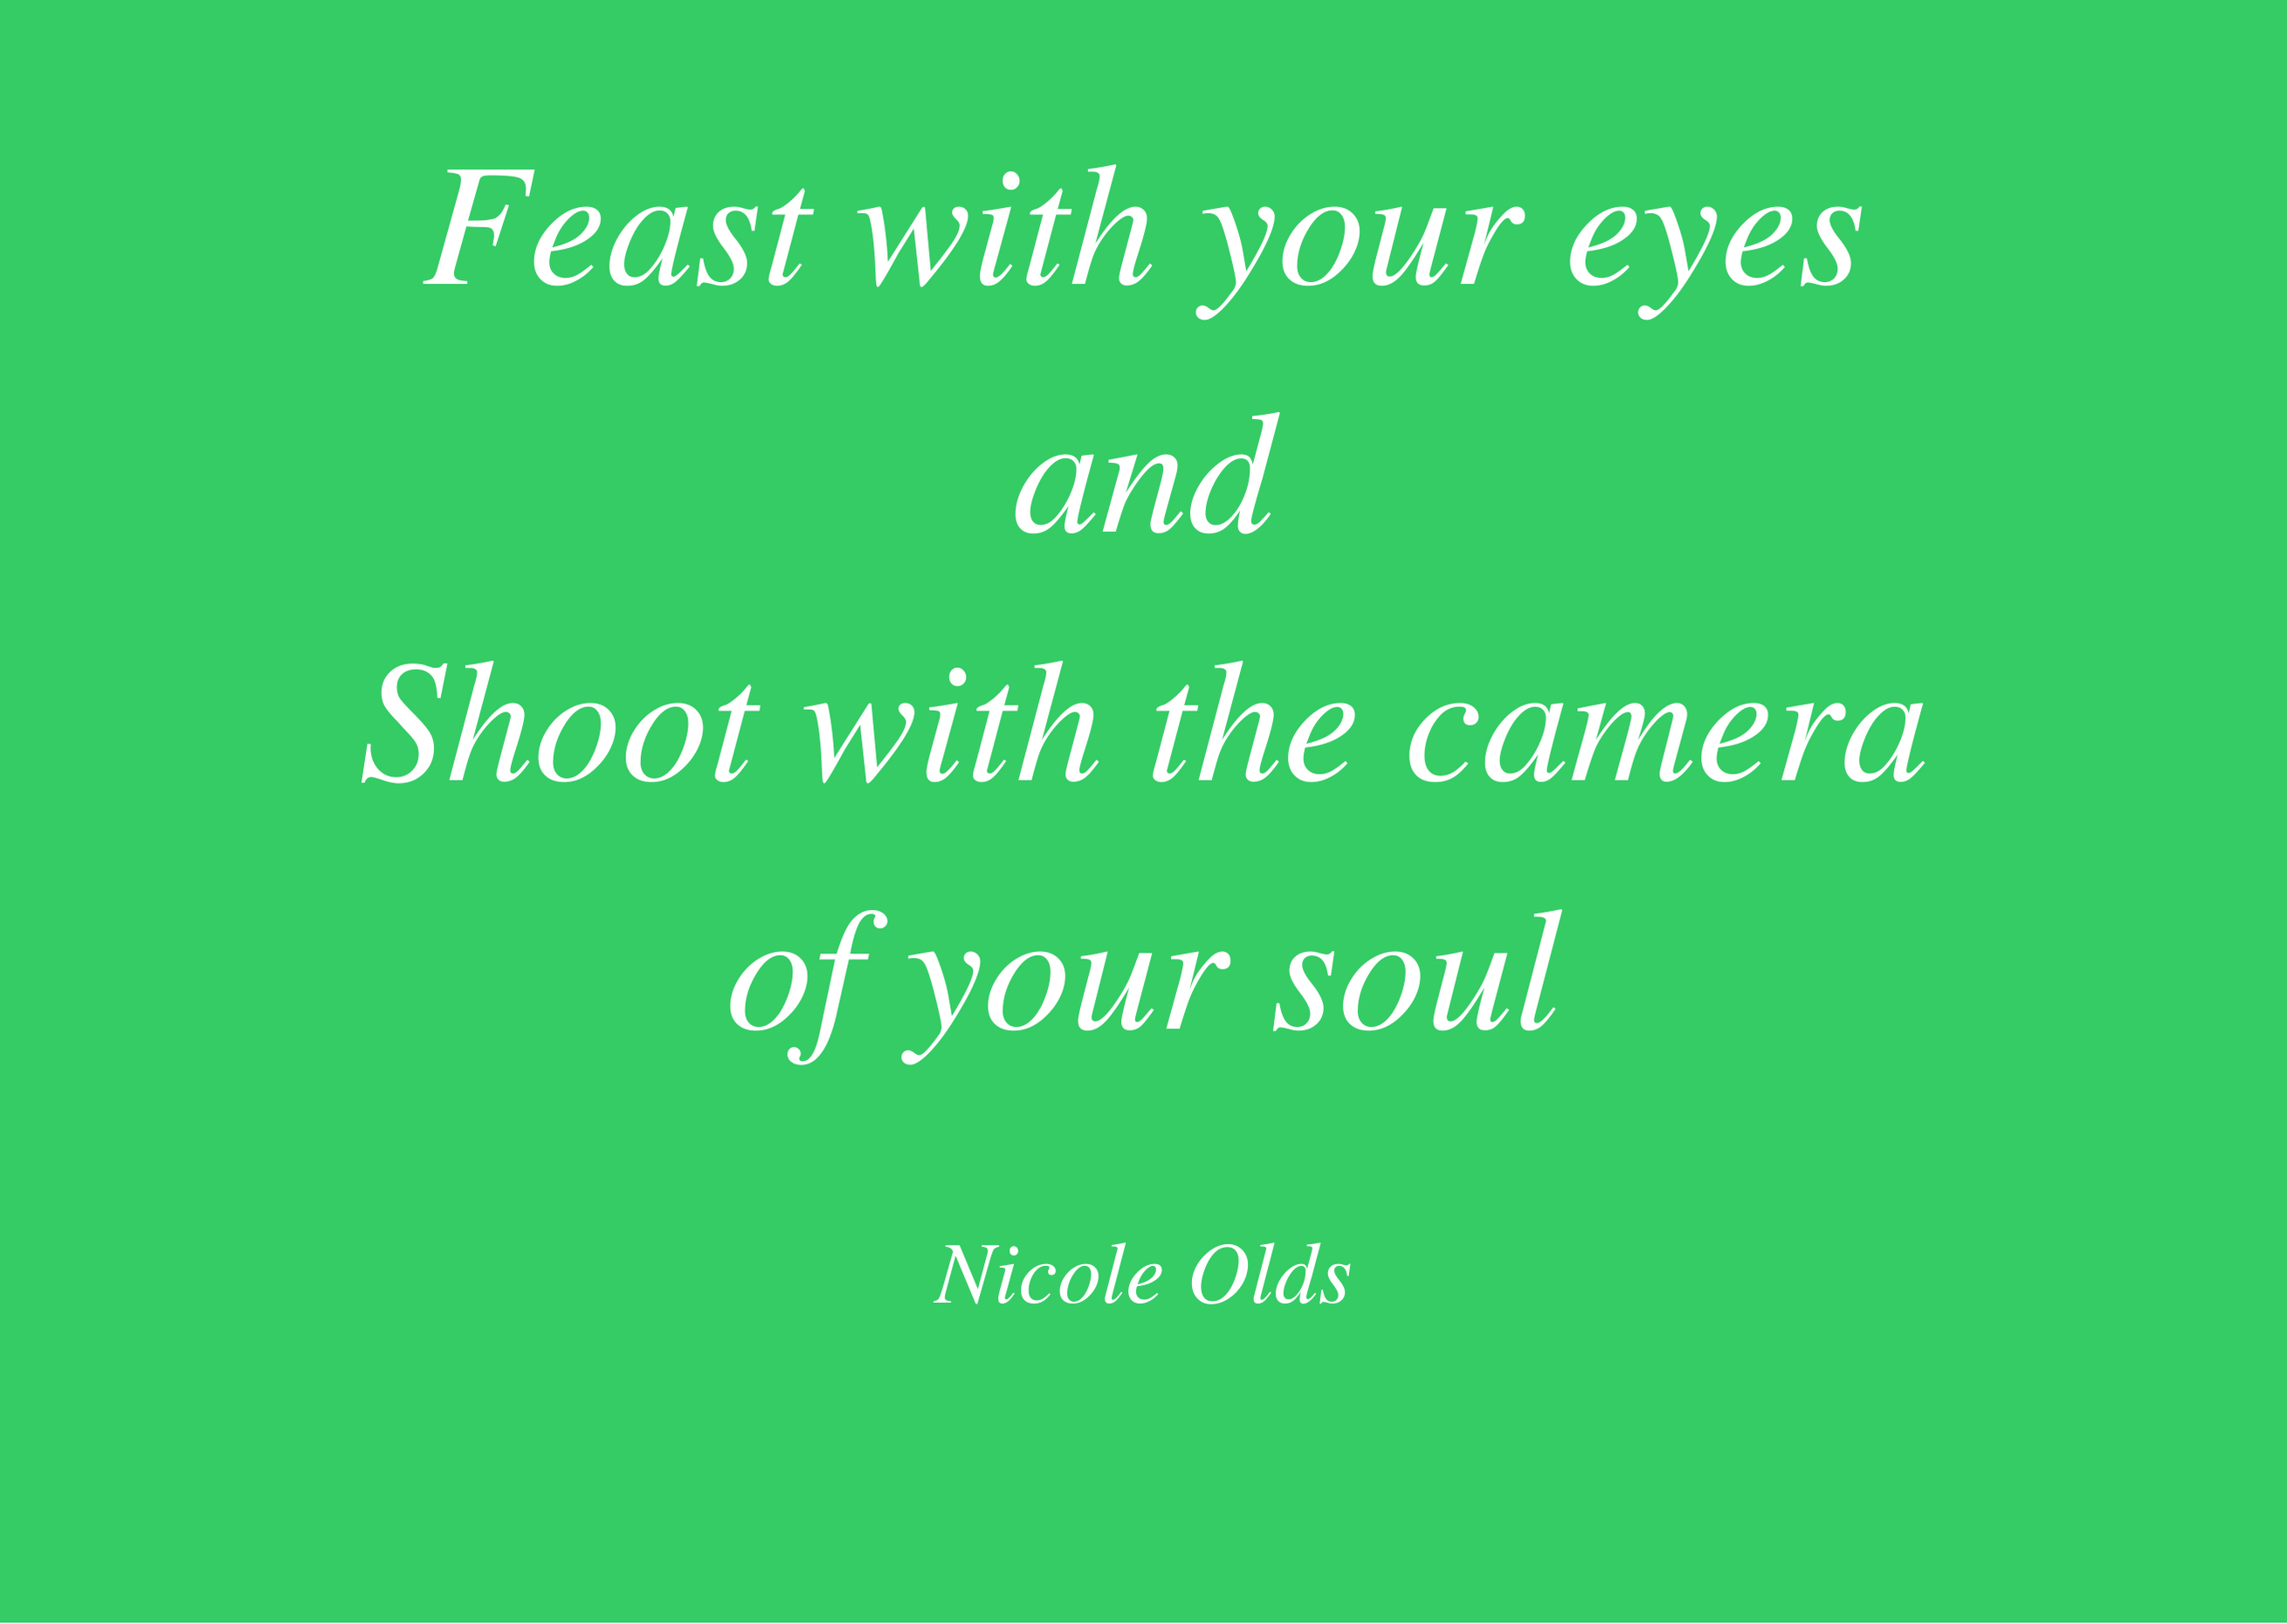 Feast with your eyes and Shoot with your camera of your soul